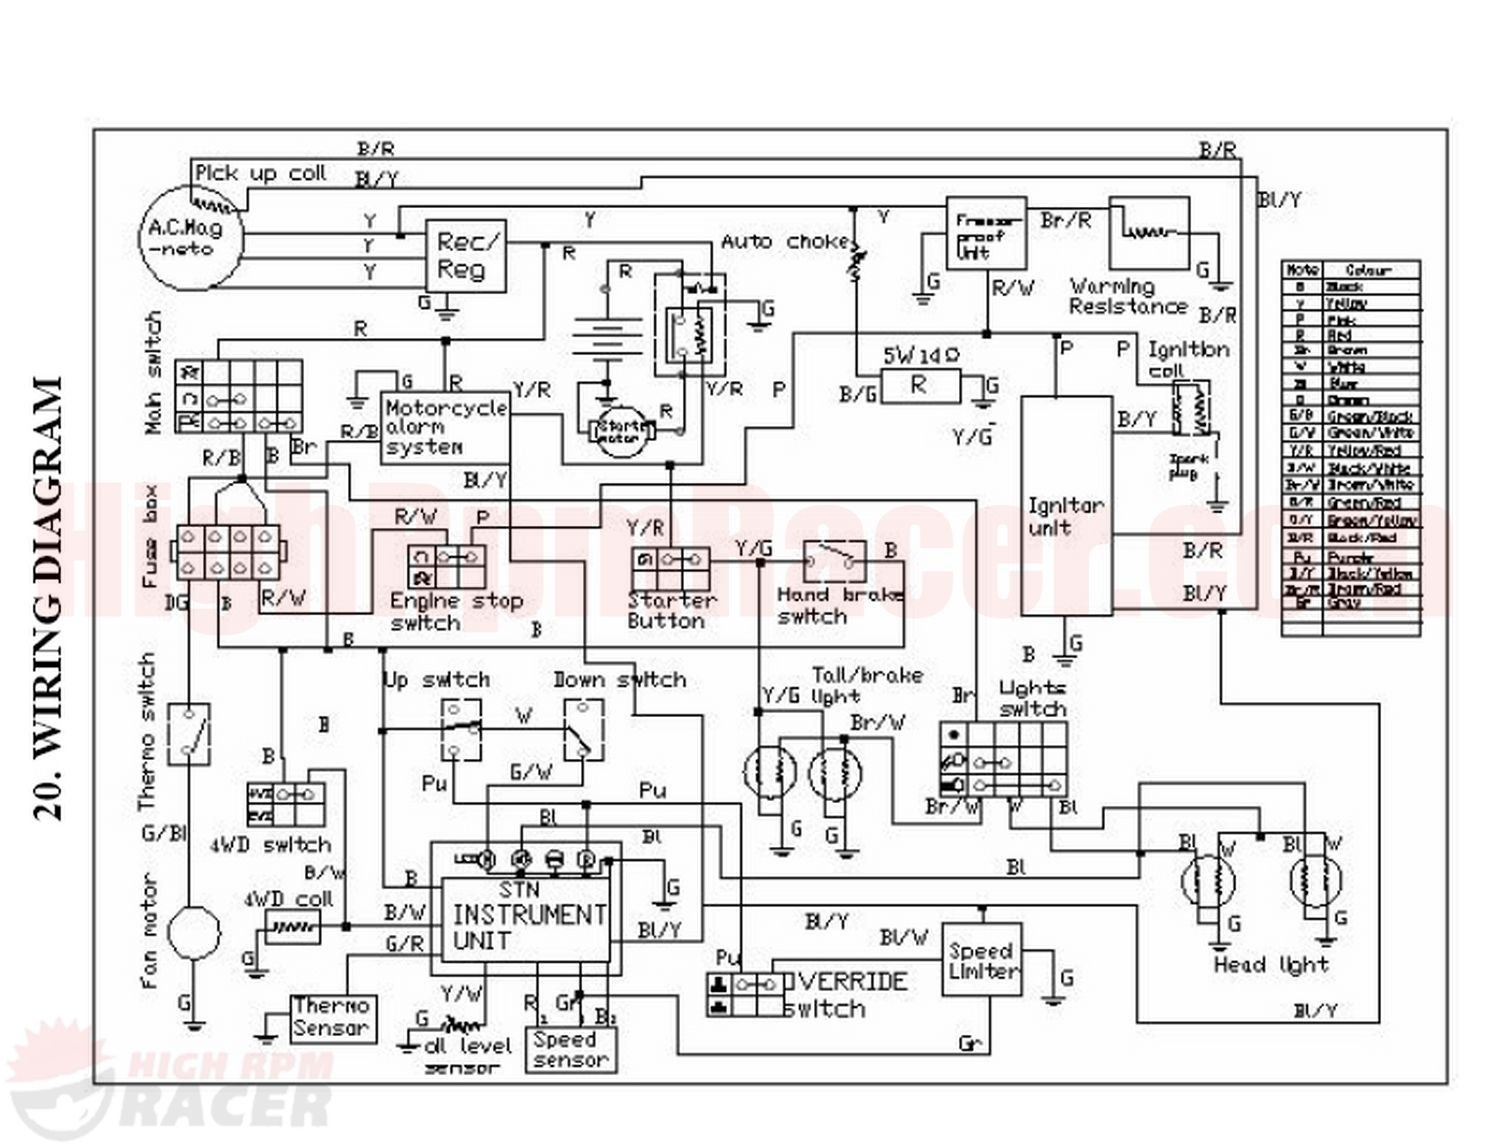 [WRG-7916] Wiring Diagram For Sunl Quad